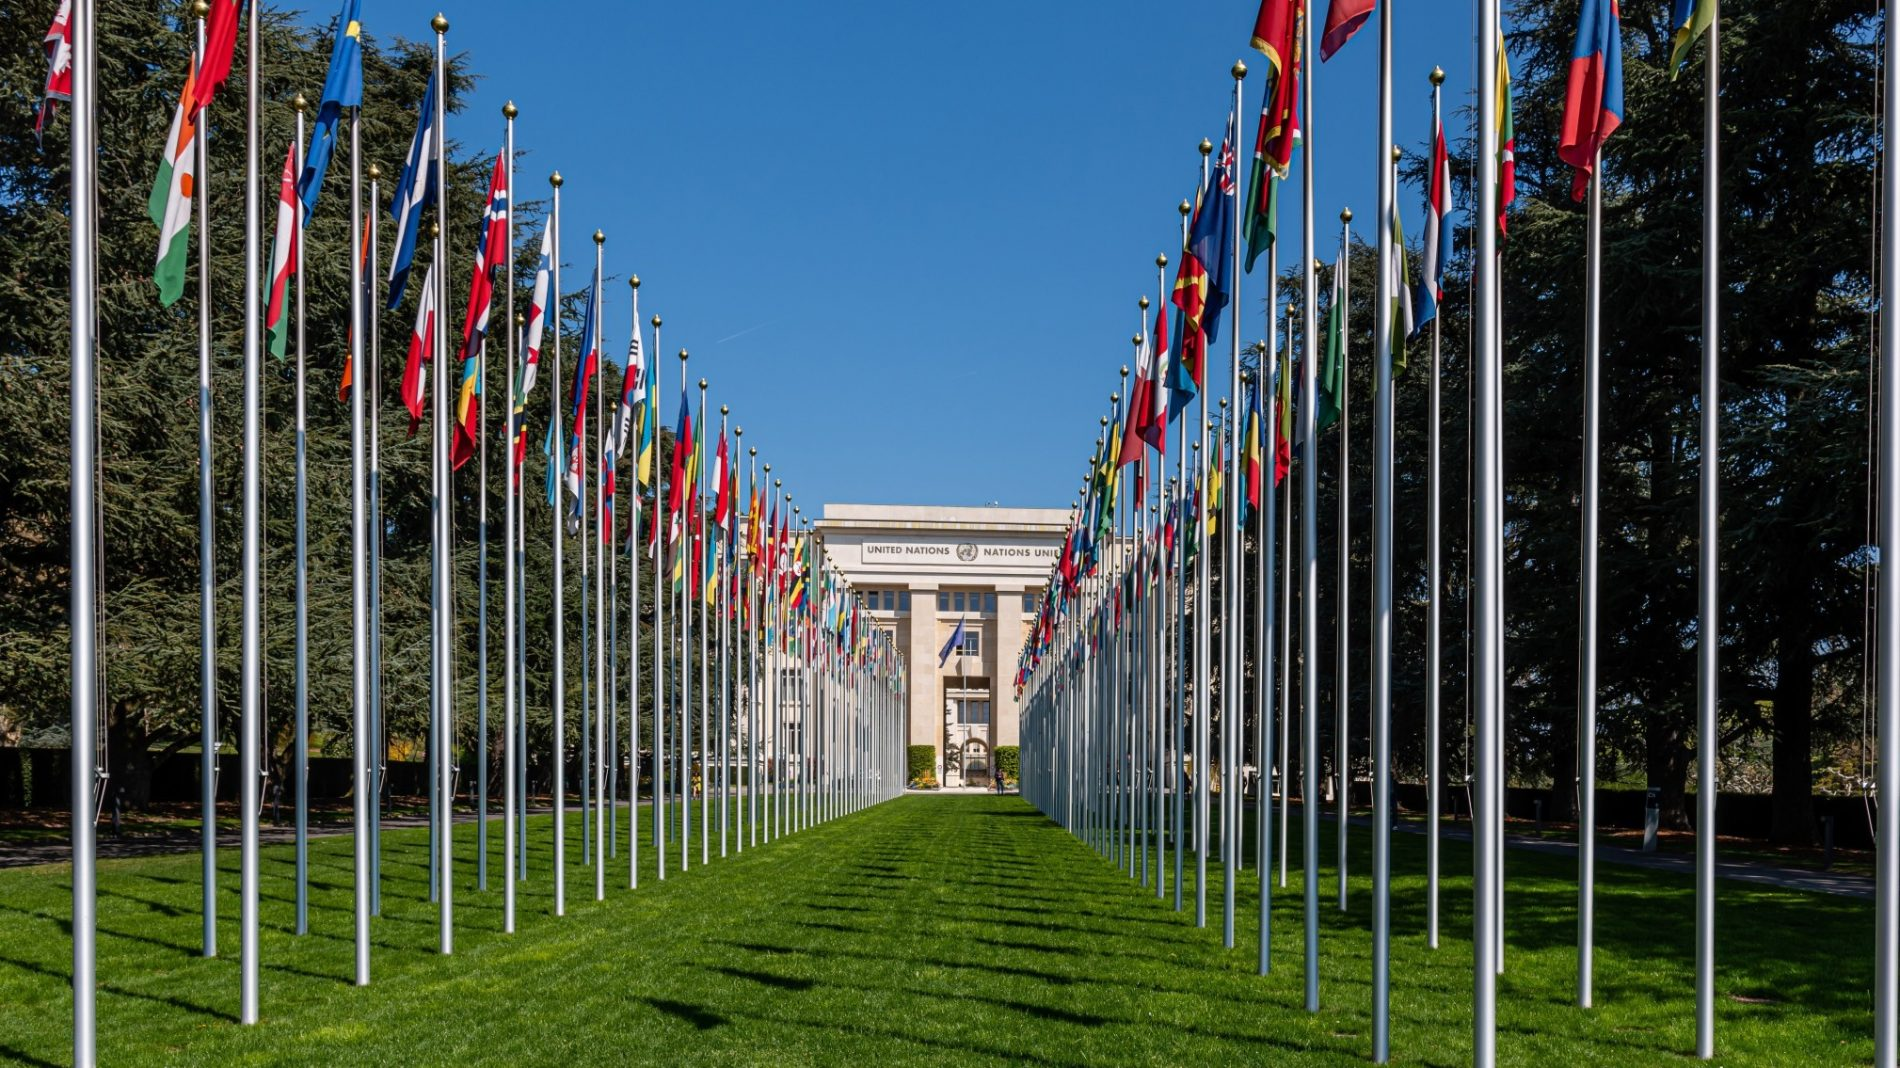 geneva-switzerland-the-palace-of-nations-building-in-geneva-is-the-headquarters-of-the-united-nations_t20_dxd24R